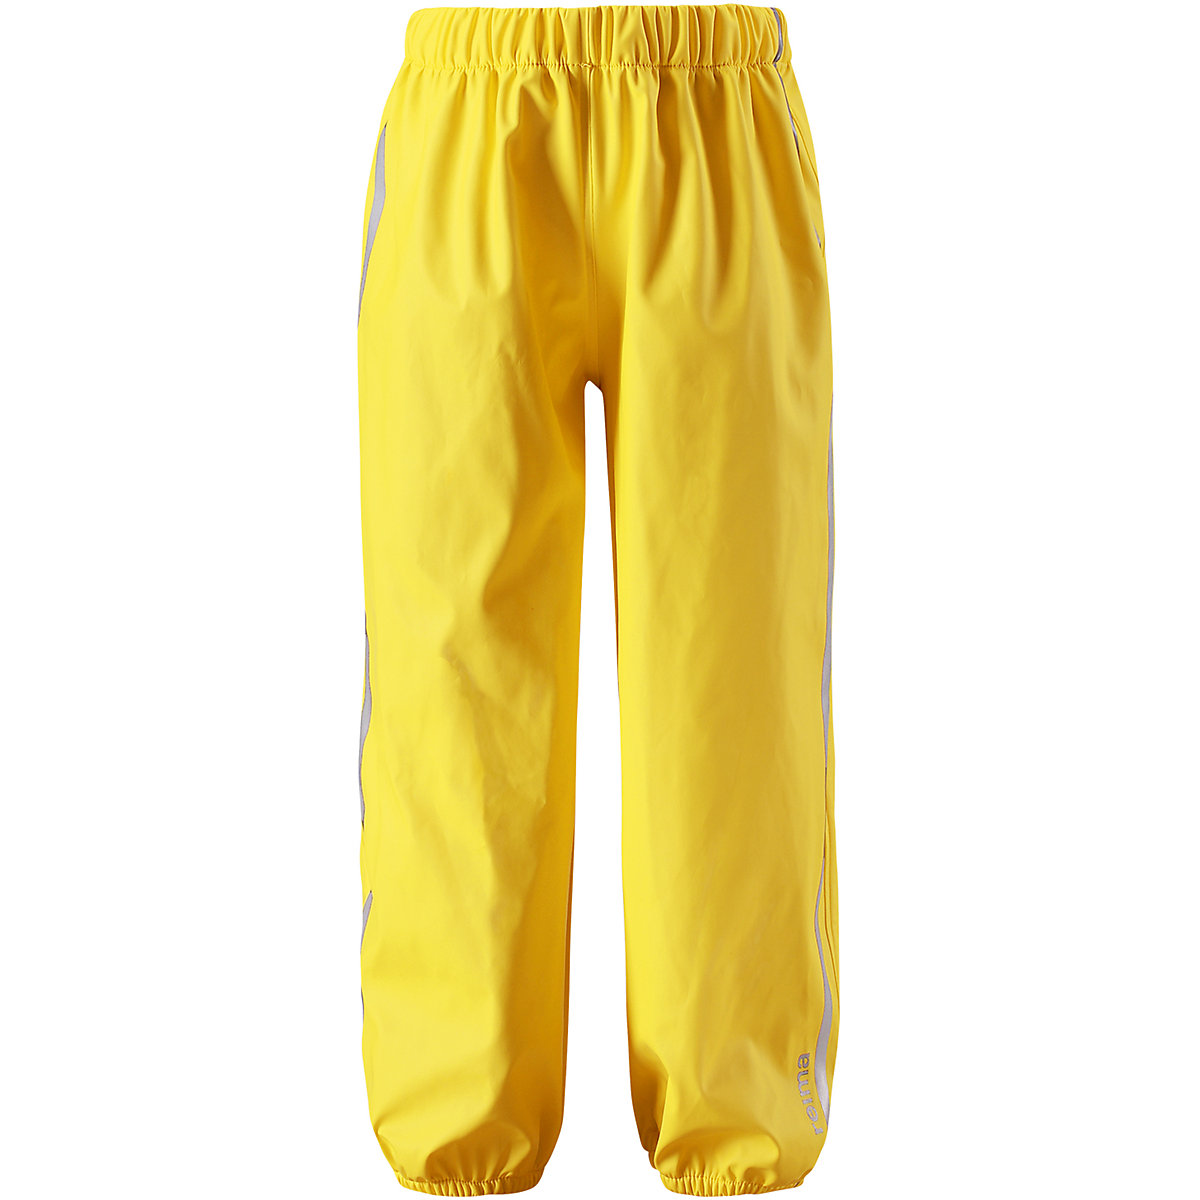 Pants & Capris Reima 8739581 for boys and girls polyester autumn winter autumn and winter new girls princess cotton shoes